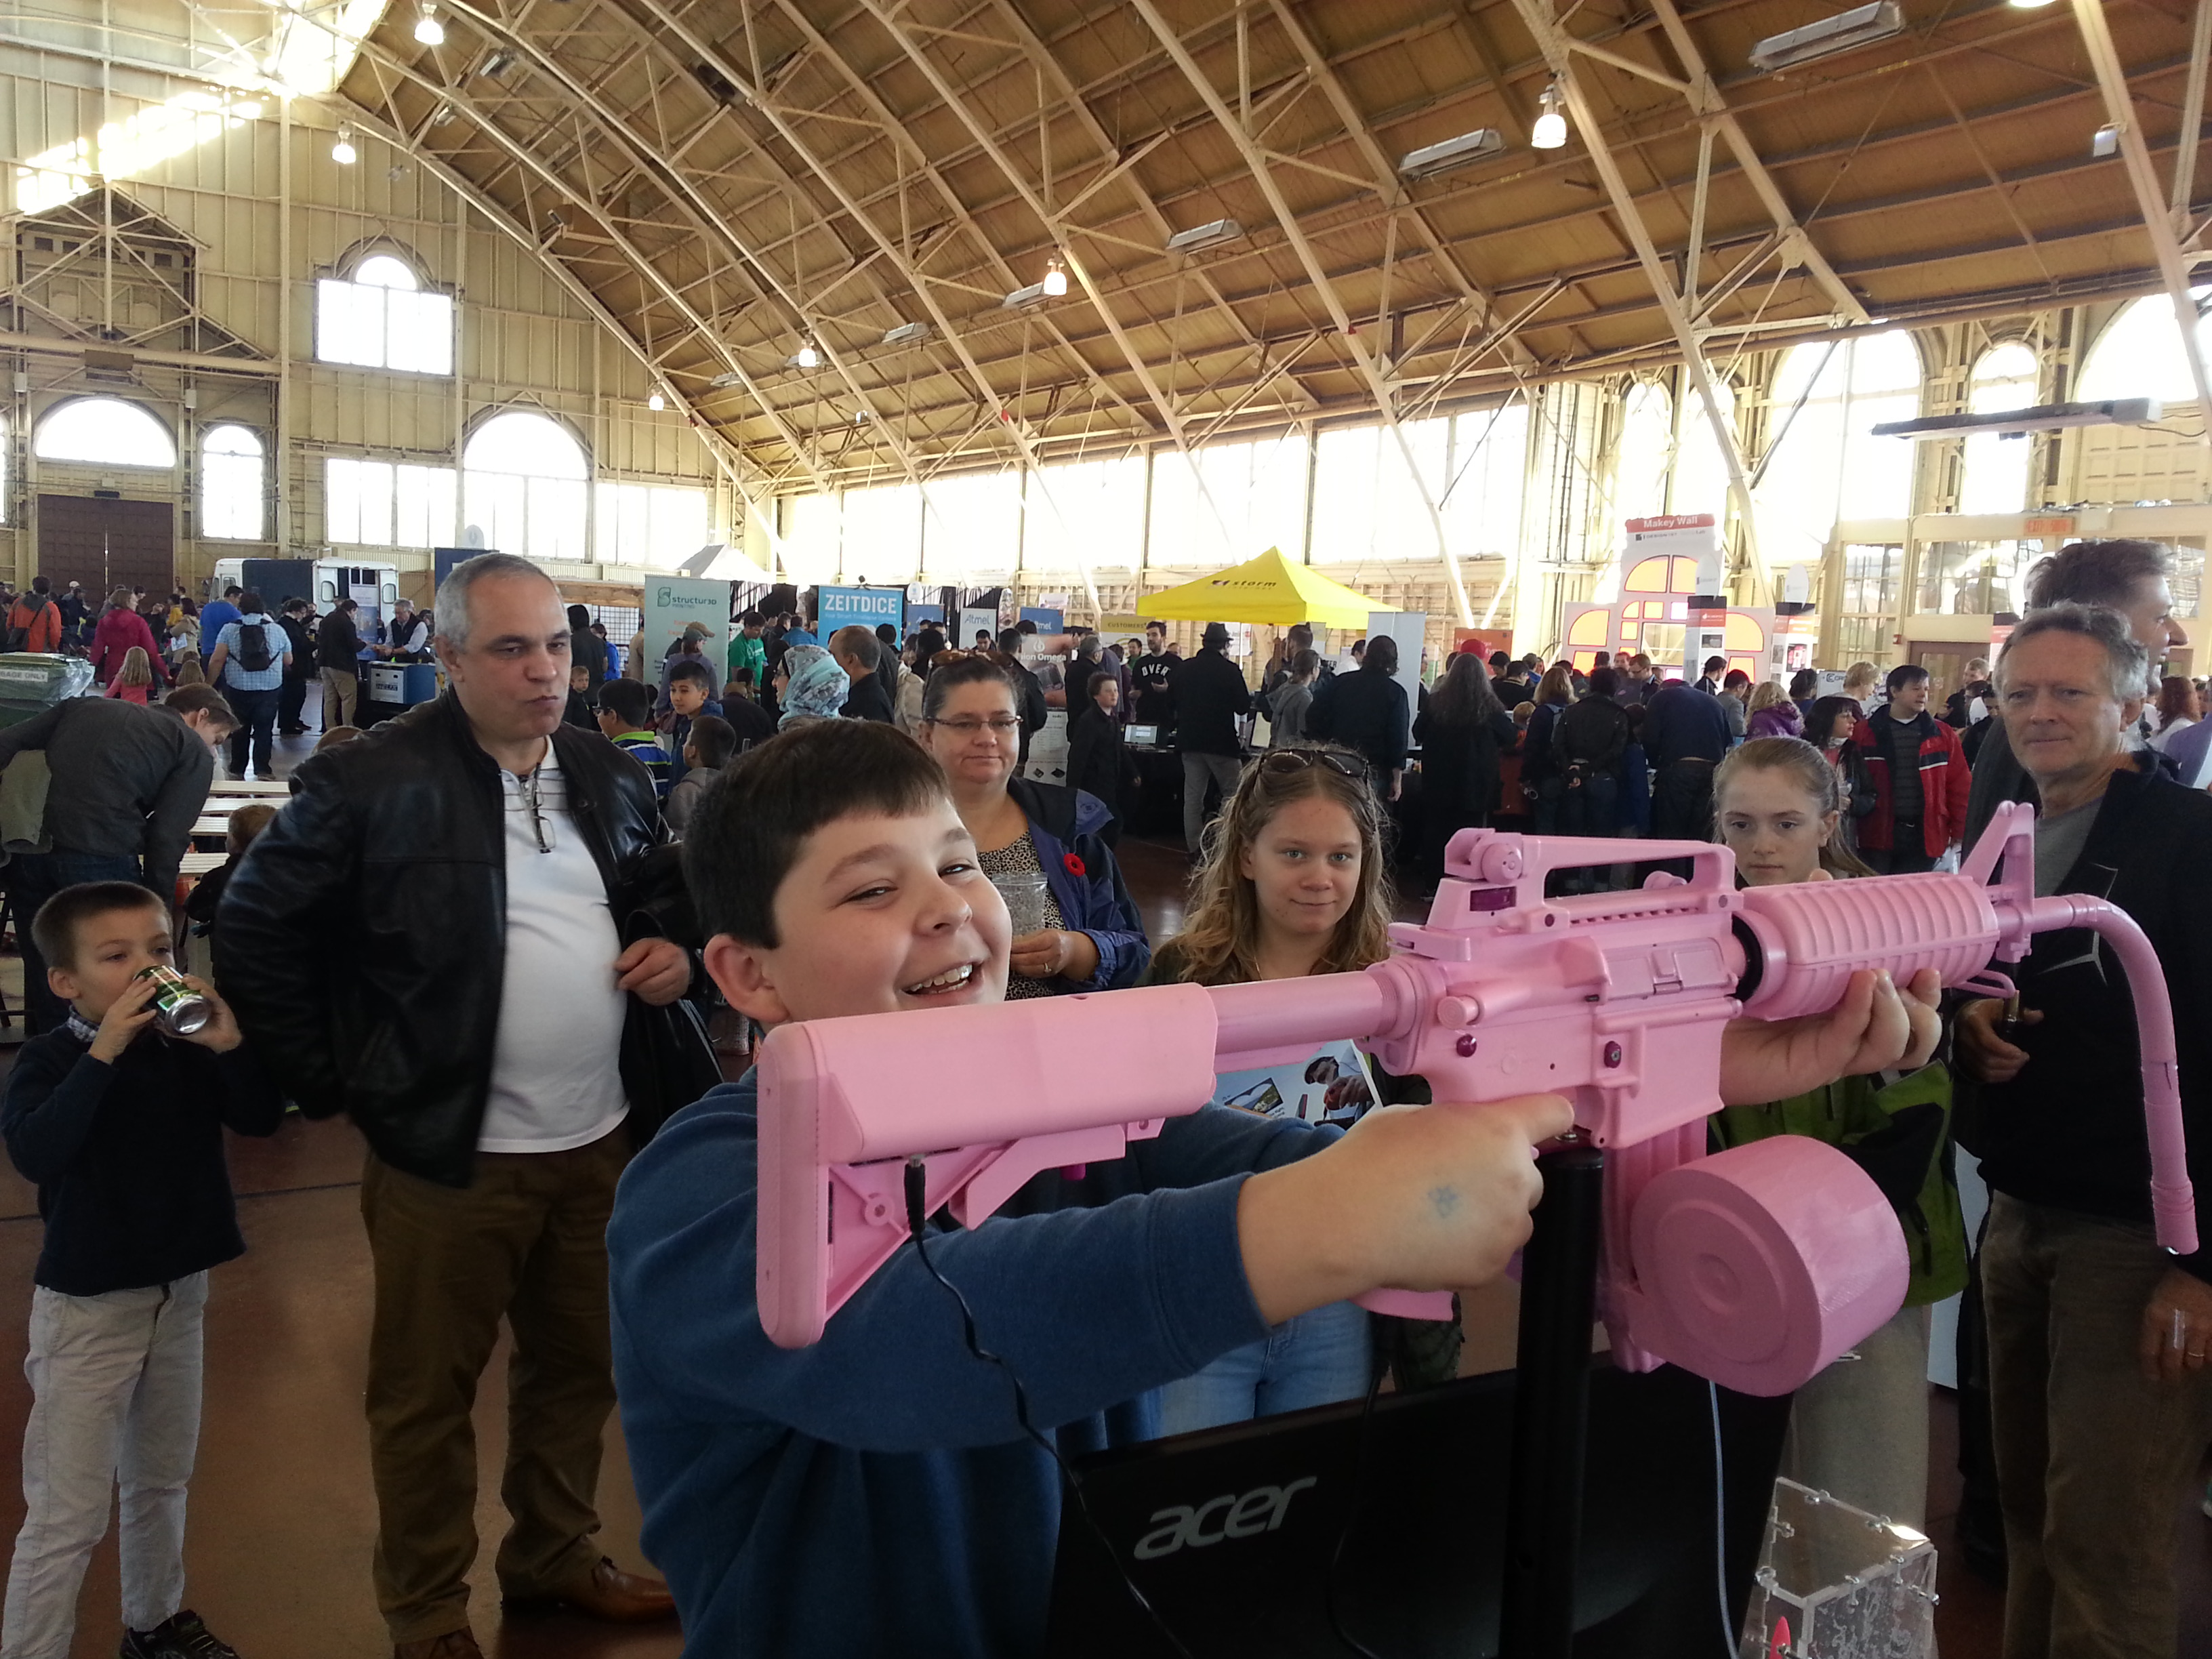 The Woman's Tears Machine Gun bullet holding Woman's tears pink gun